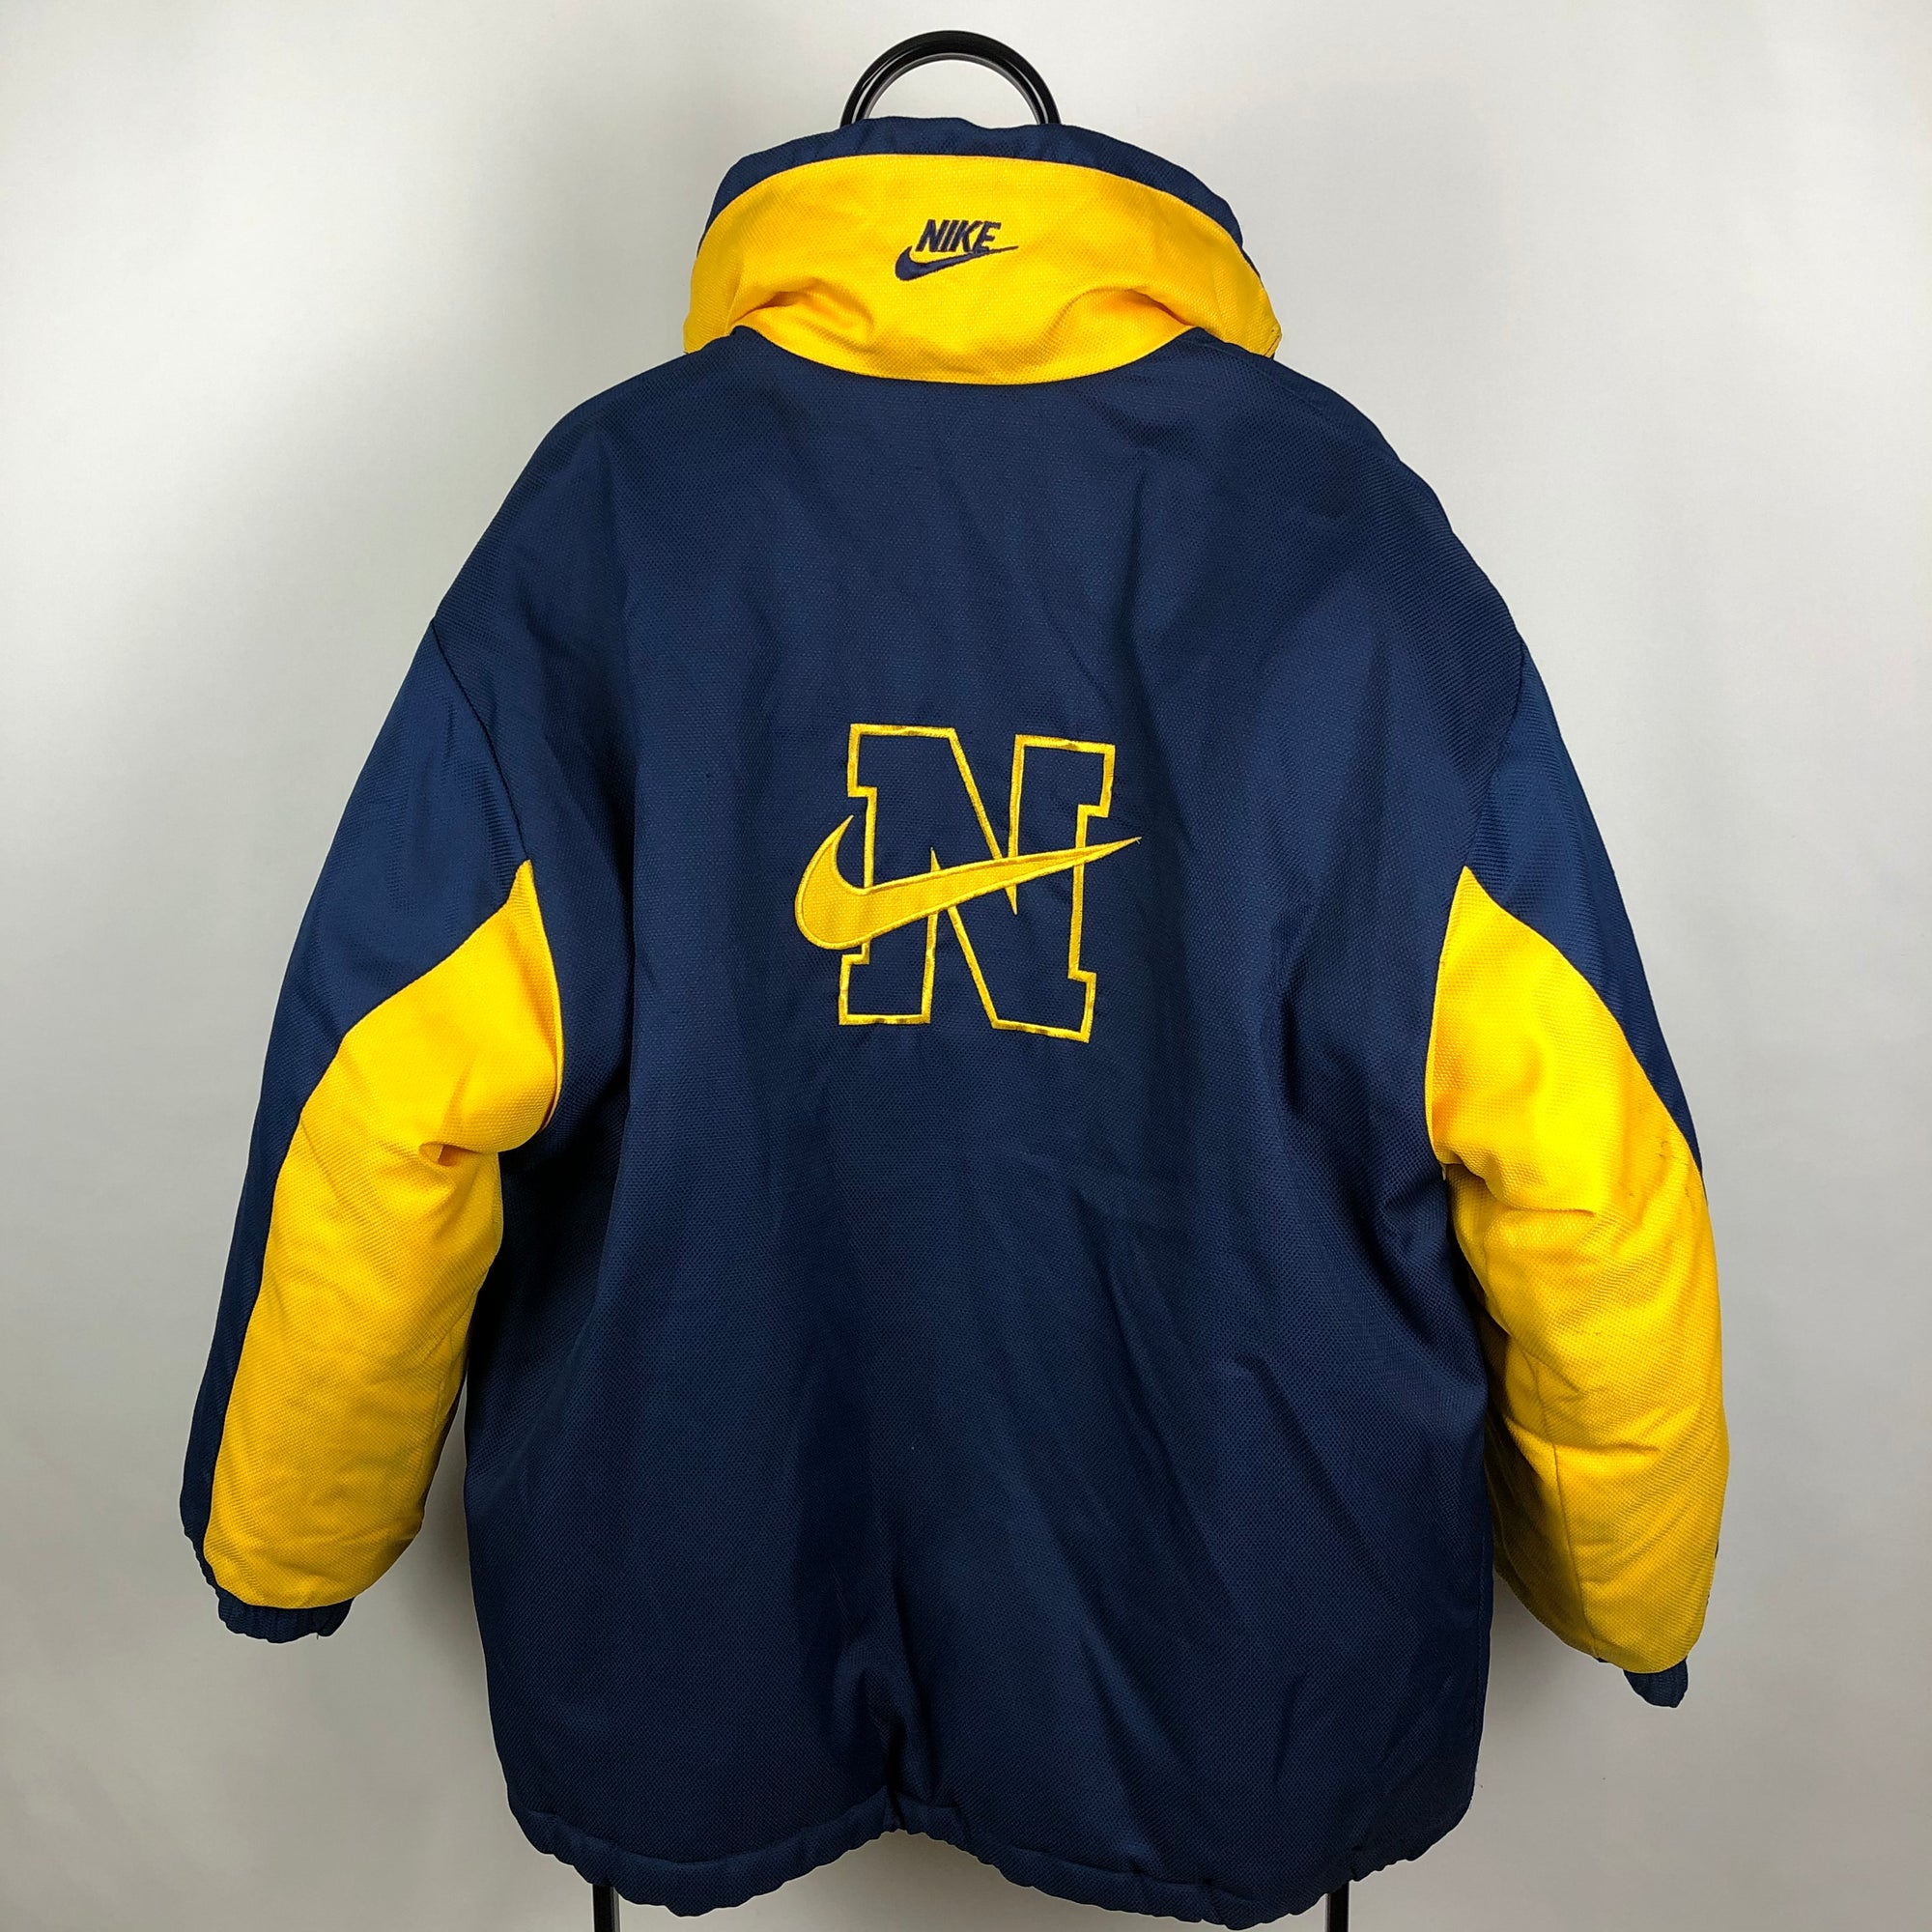 Vintage Nike Reversible Puffer Coat in Navy/Yellow - Men's Large/Women's XL